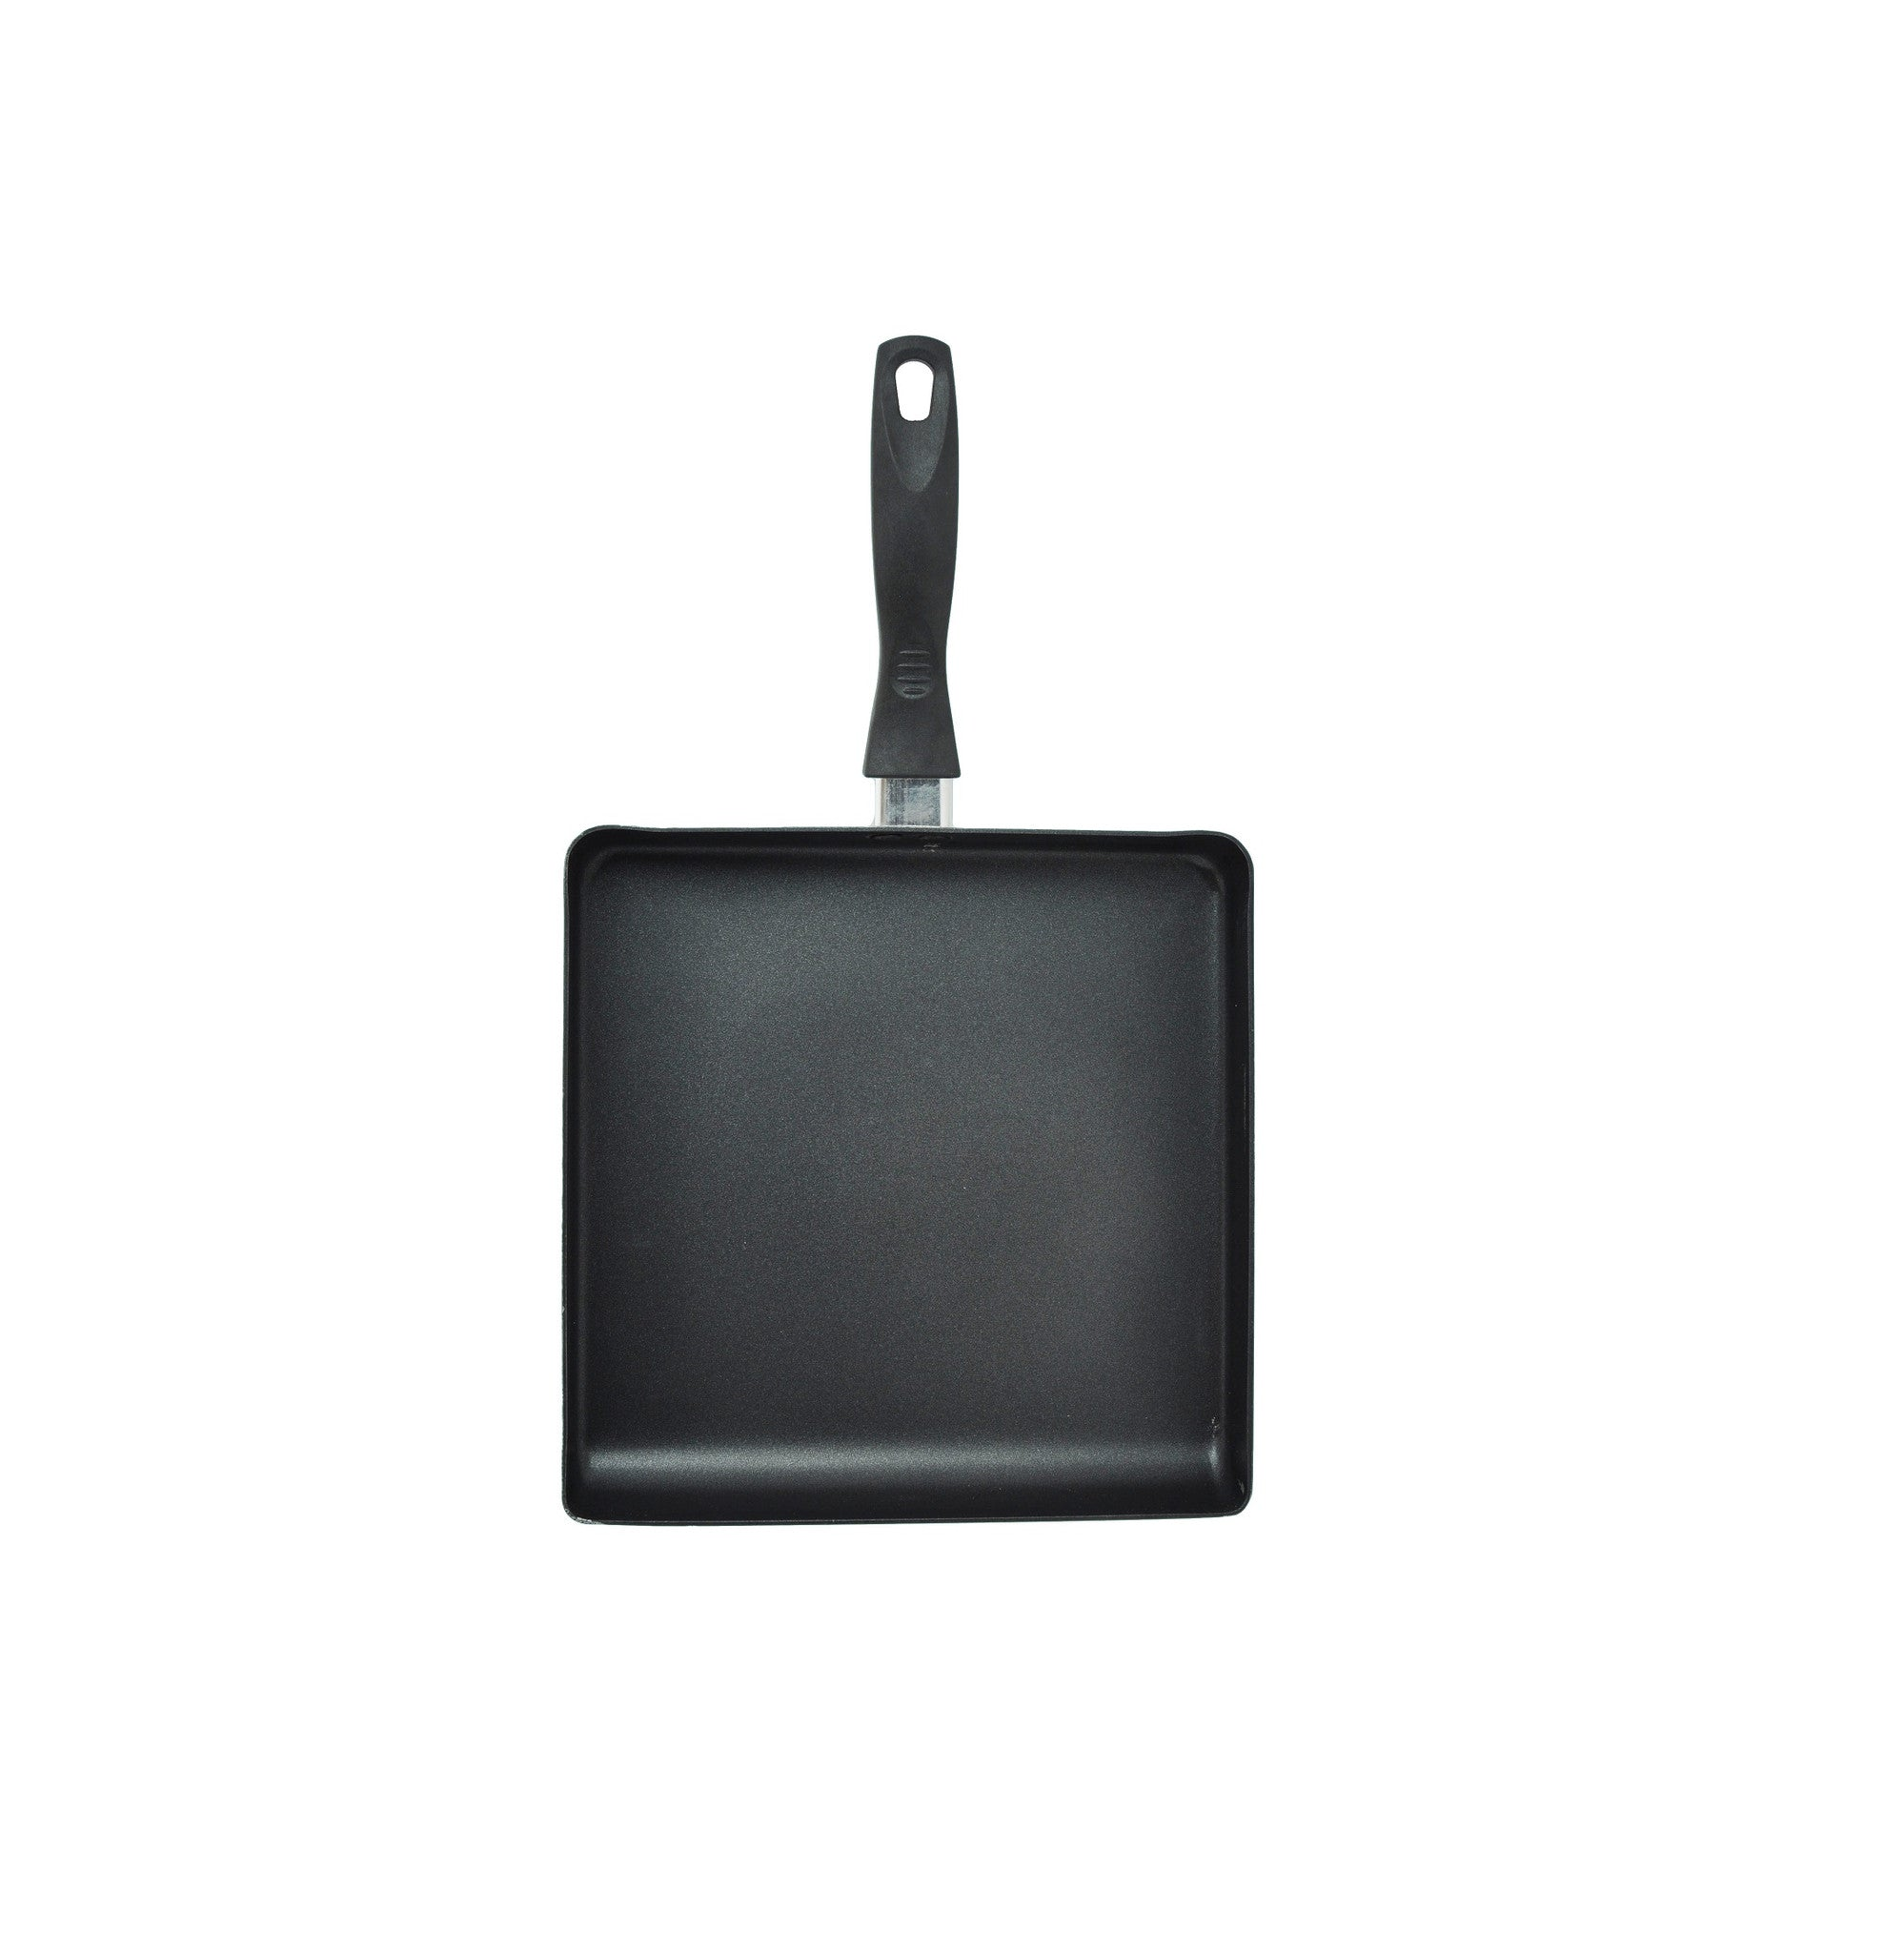 Egg Fry Pan, Non-Stick Coating, Cookware - eKitchenary